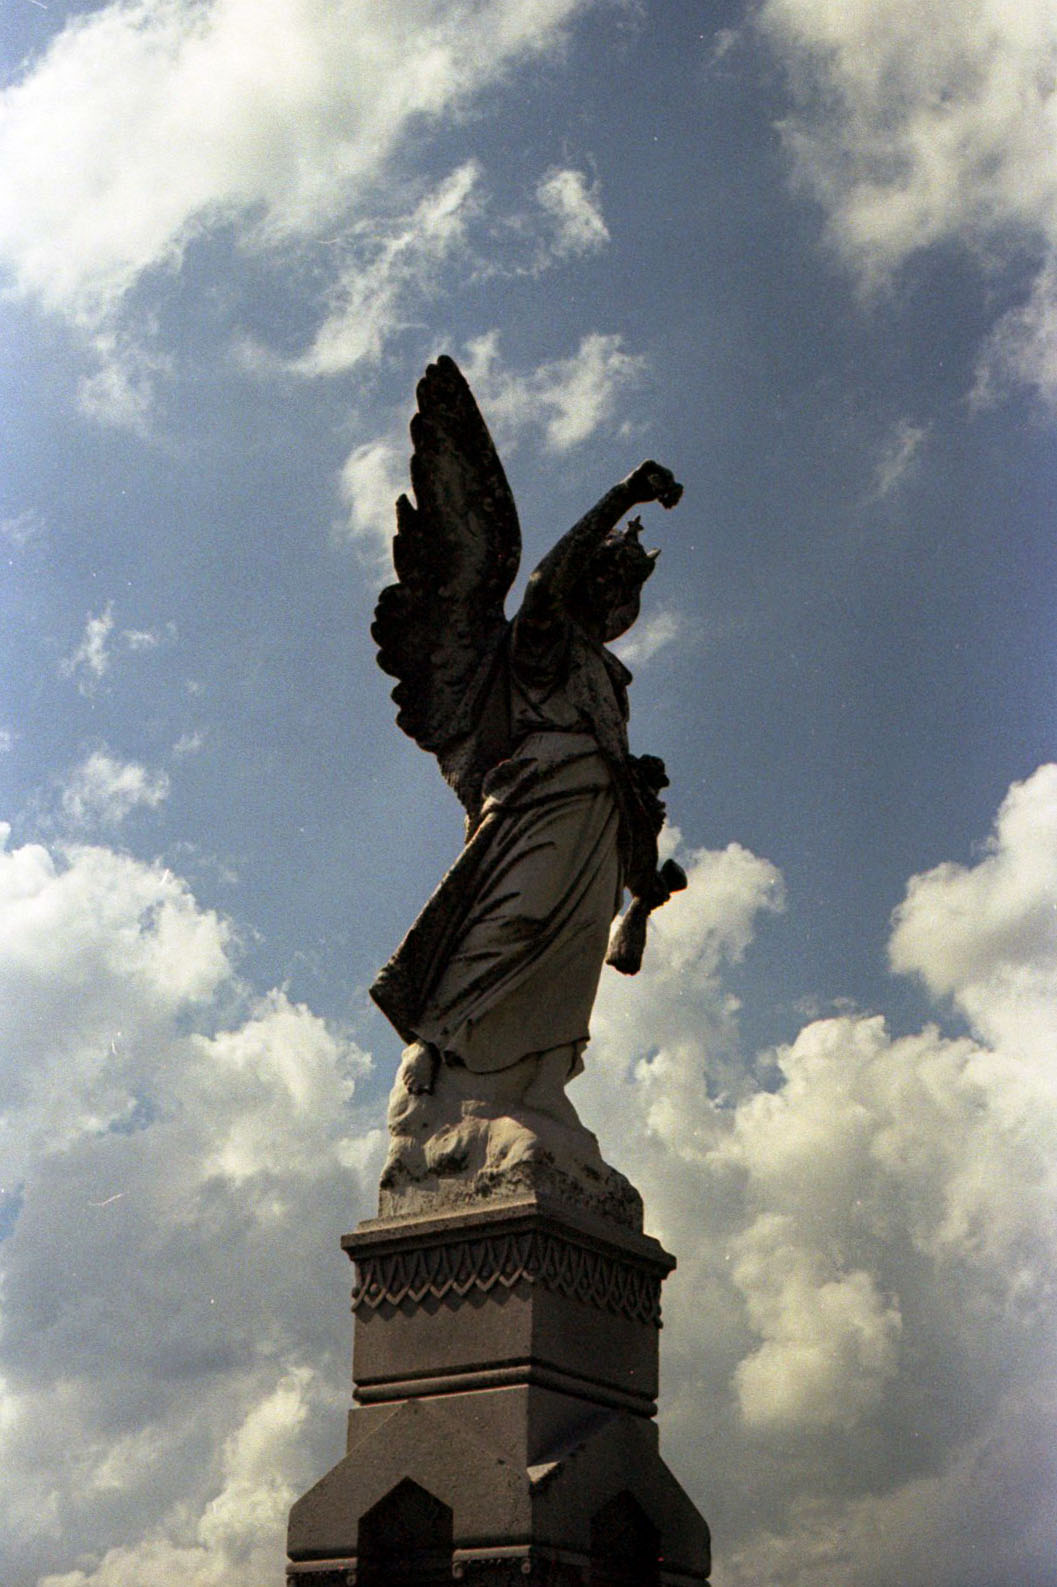 angel_in_the_clouds_29072097246_o.jpg